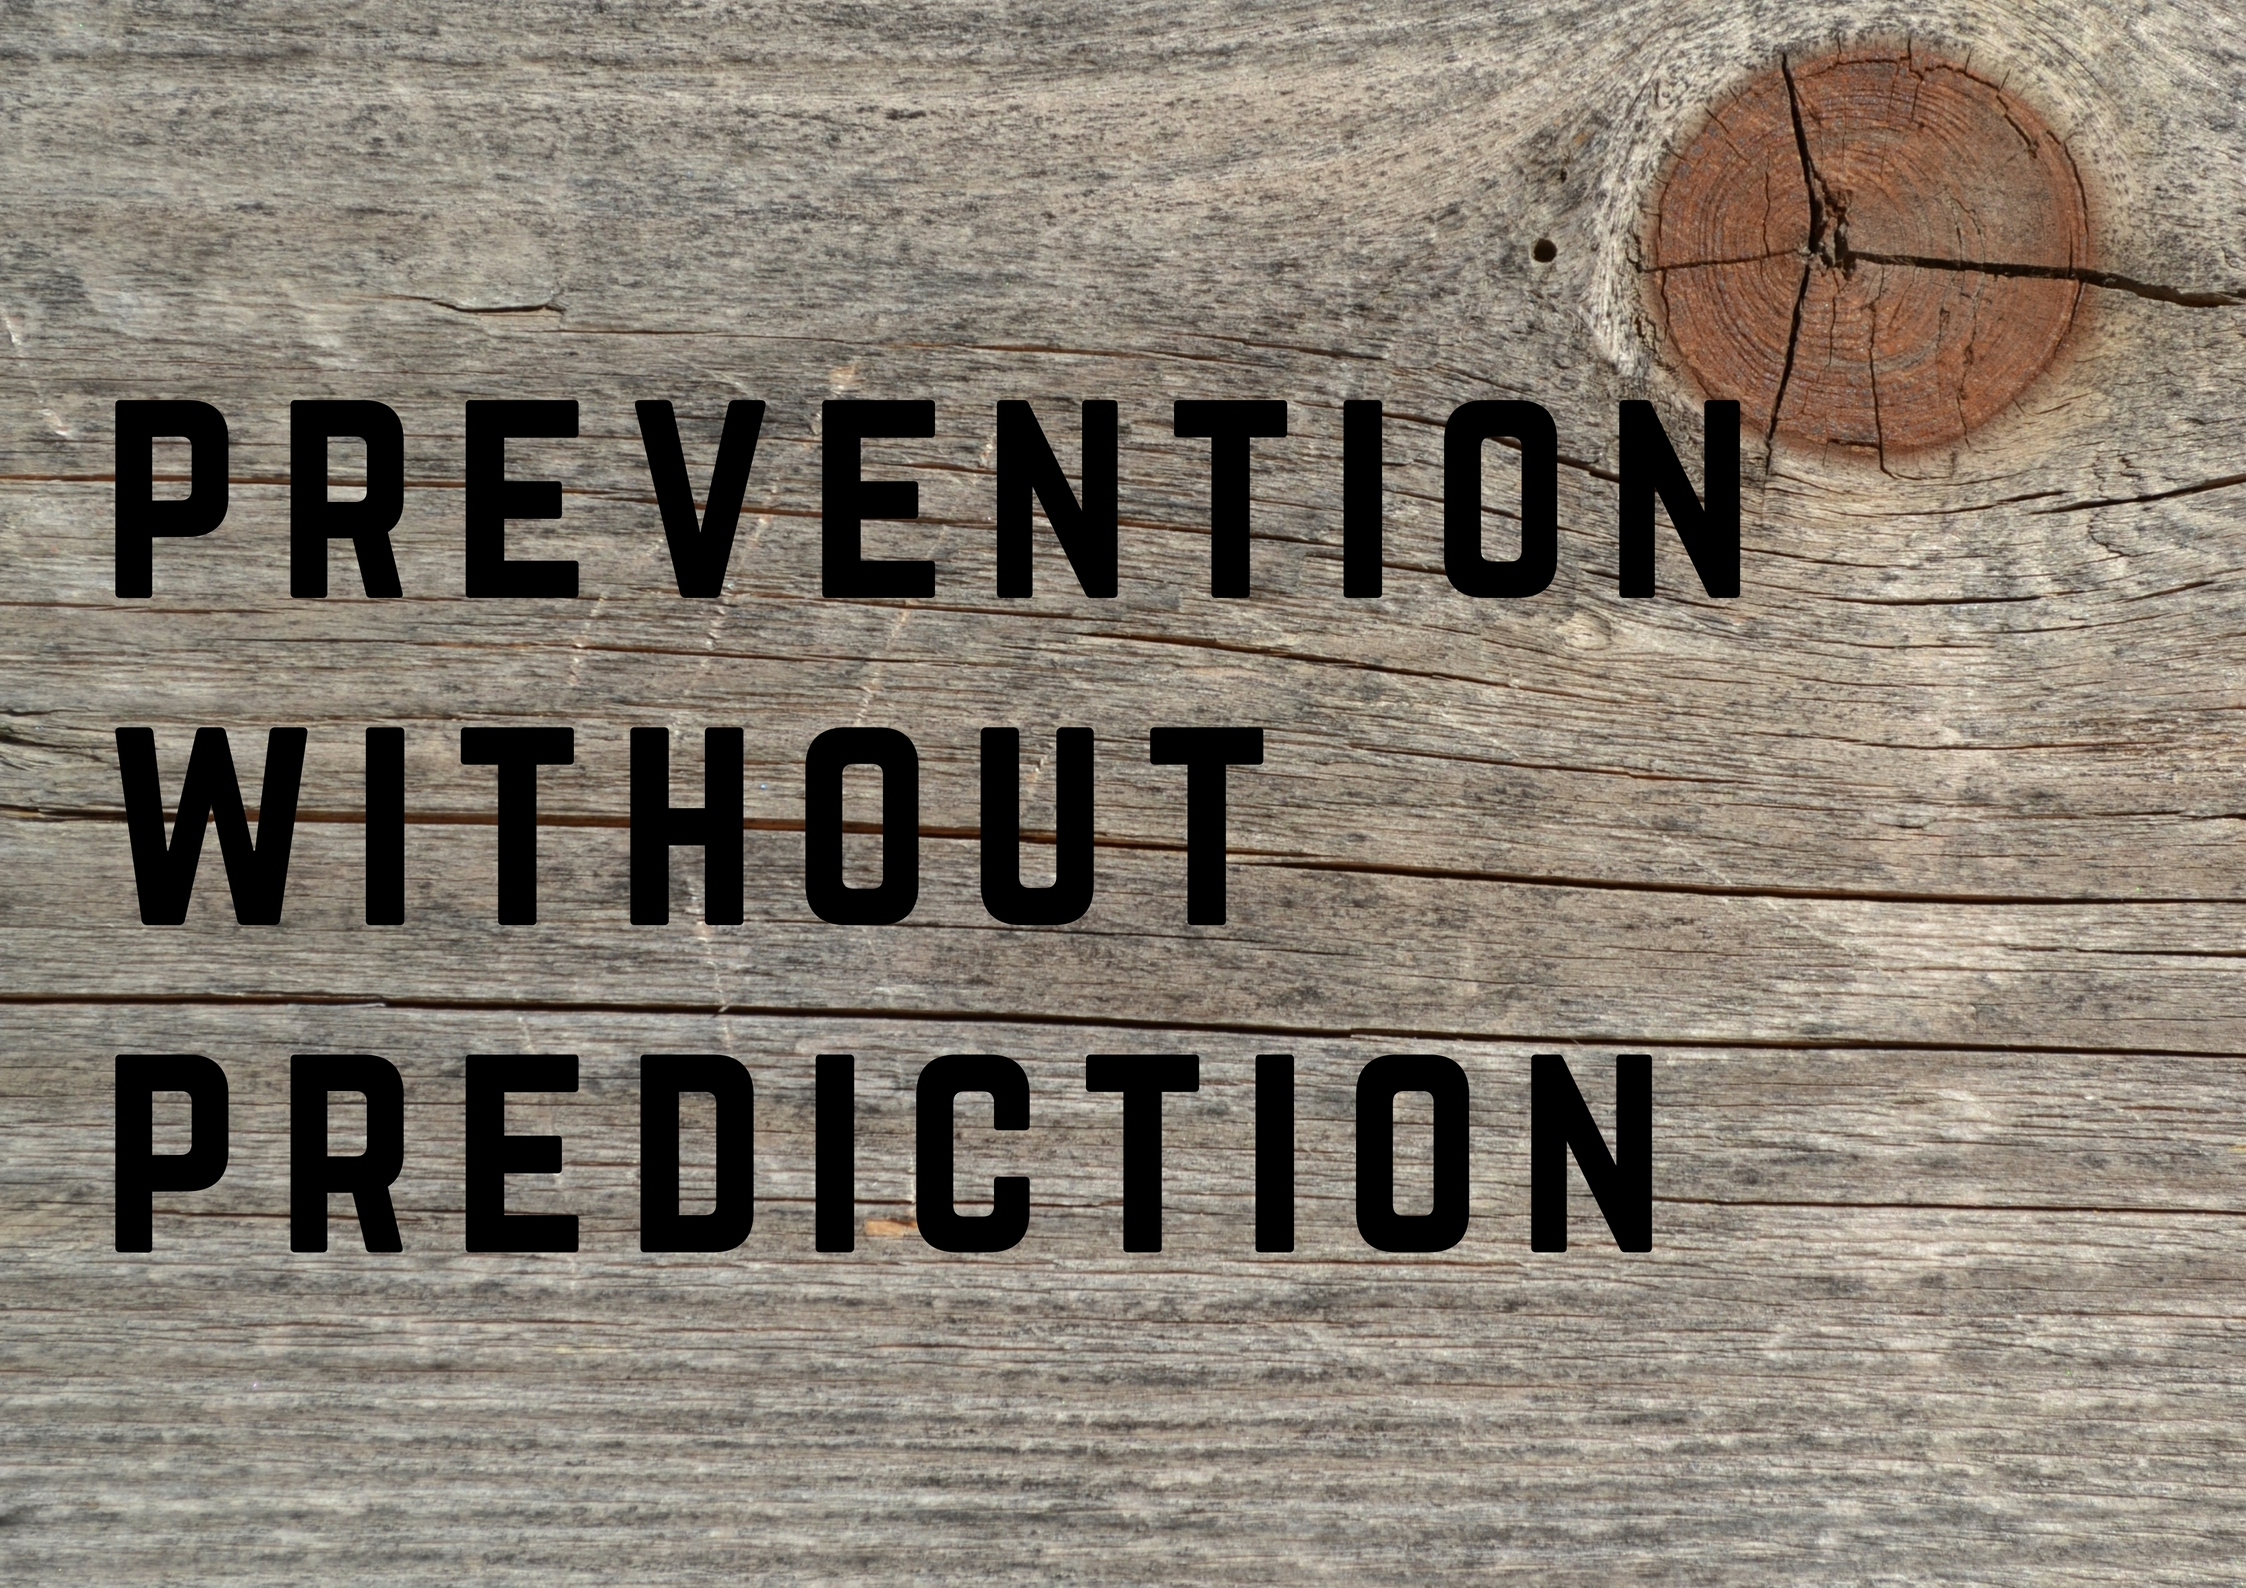 Prevention without Prediction